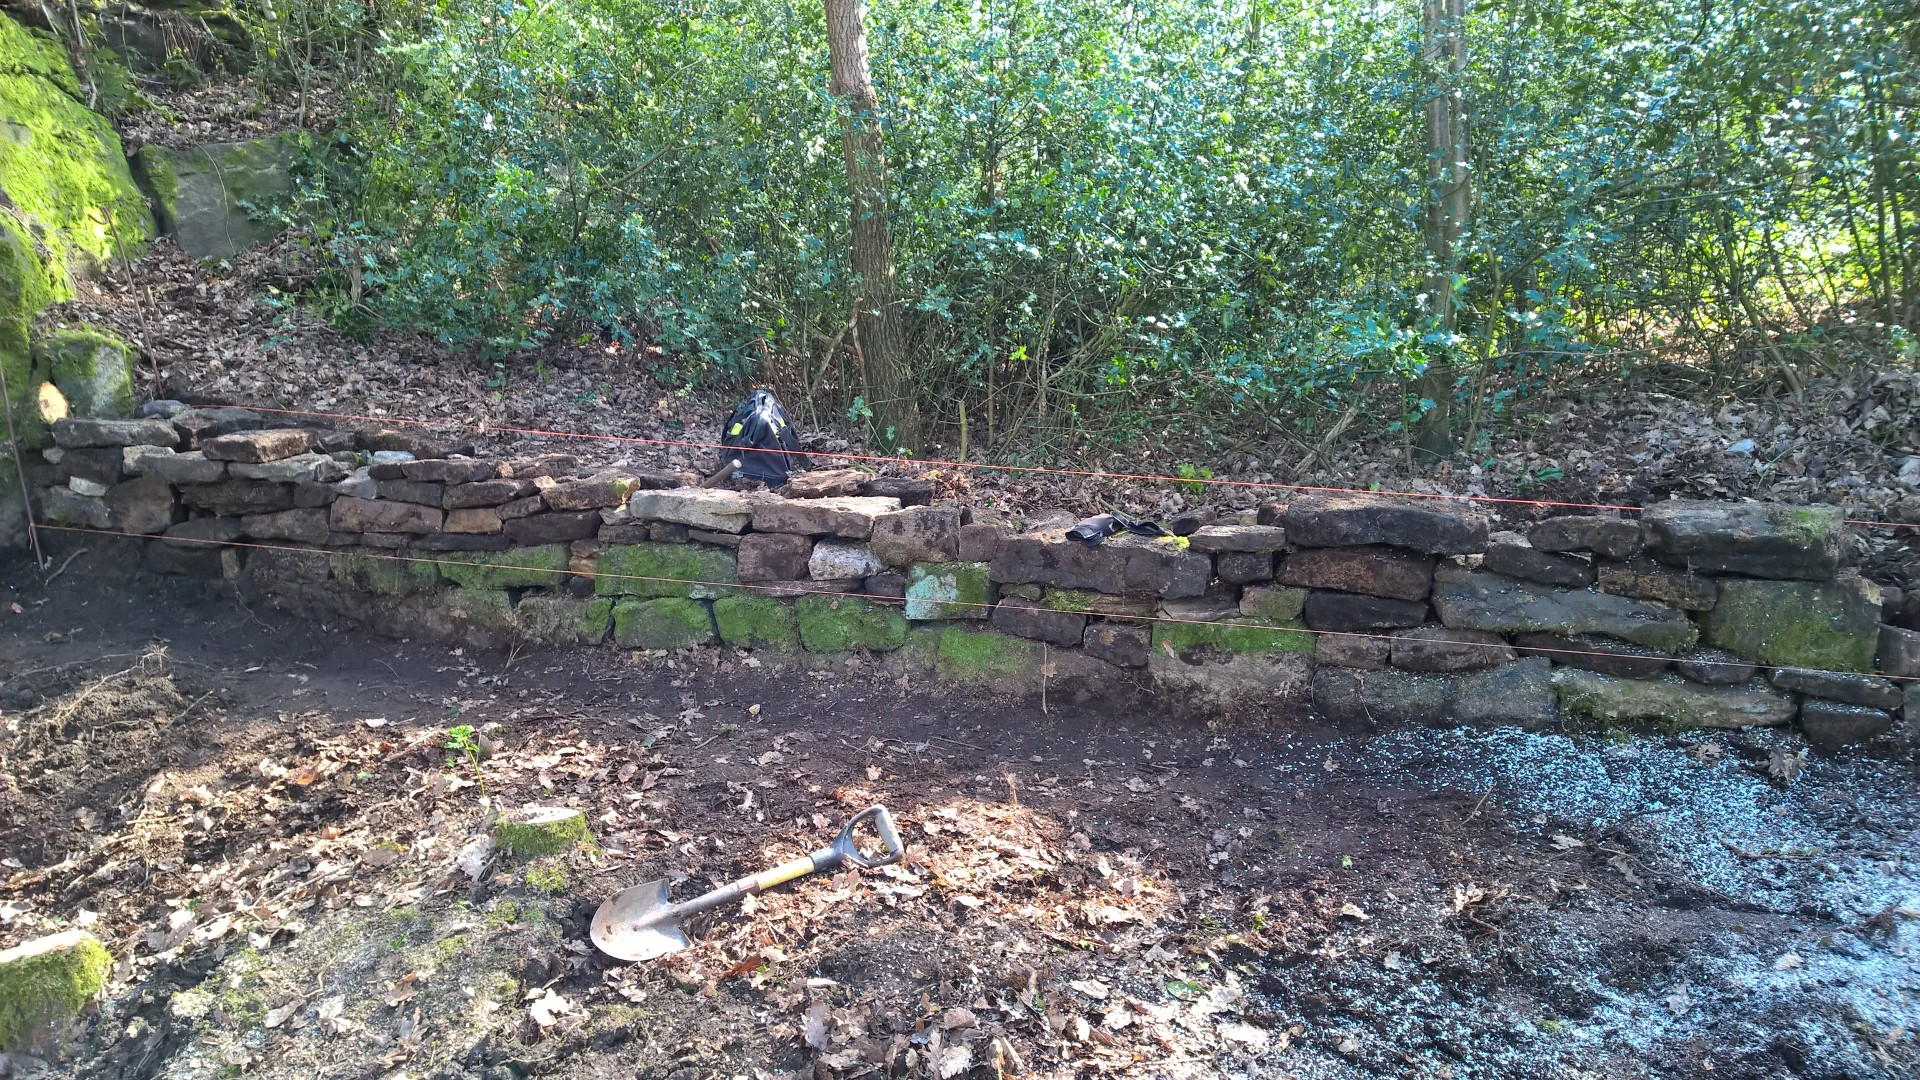 We believe that this is the boundary wall between the old quarry that was in the bottom field and Hagg Wood.  According to the old maps, this quarry was no longer used from about 1899.  Most of the stone for the wall was under the piles of leafs.